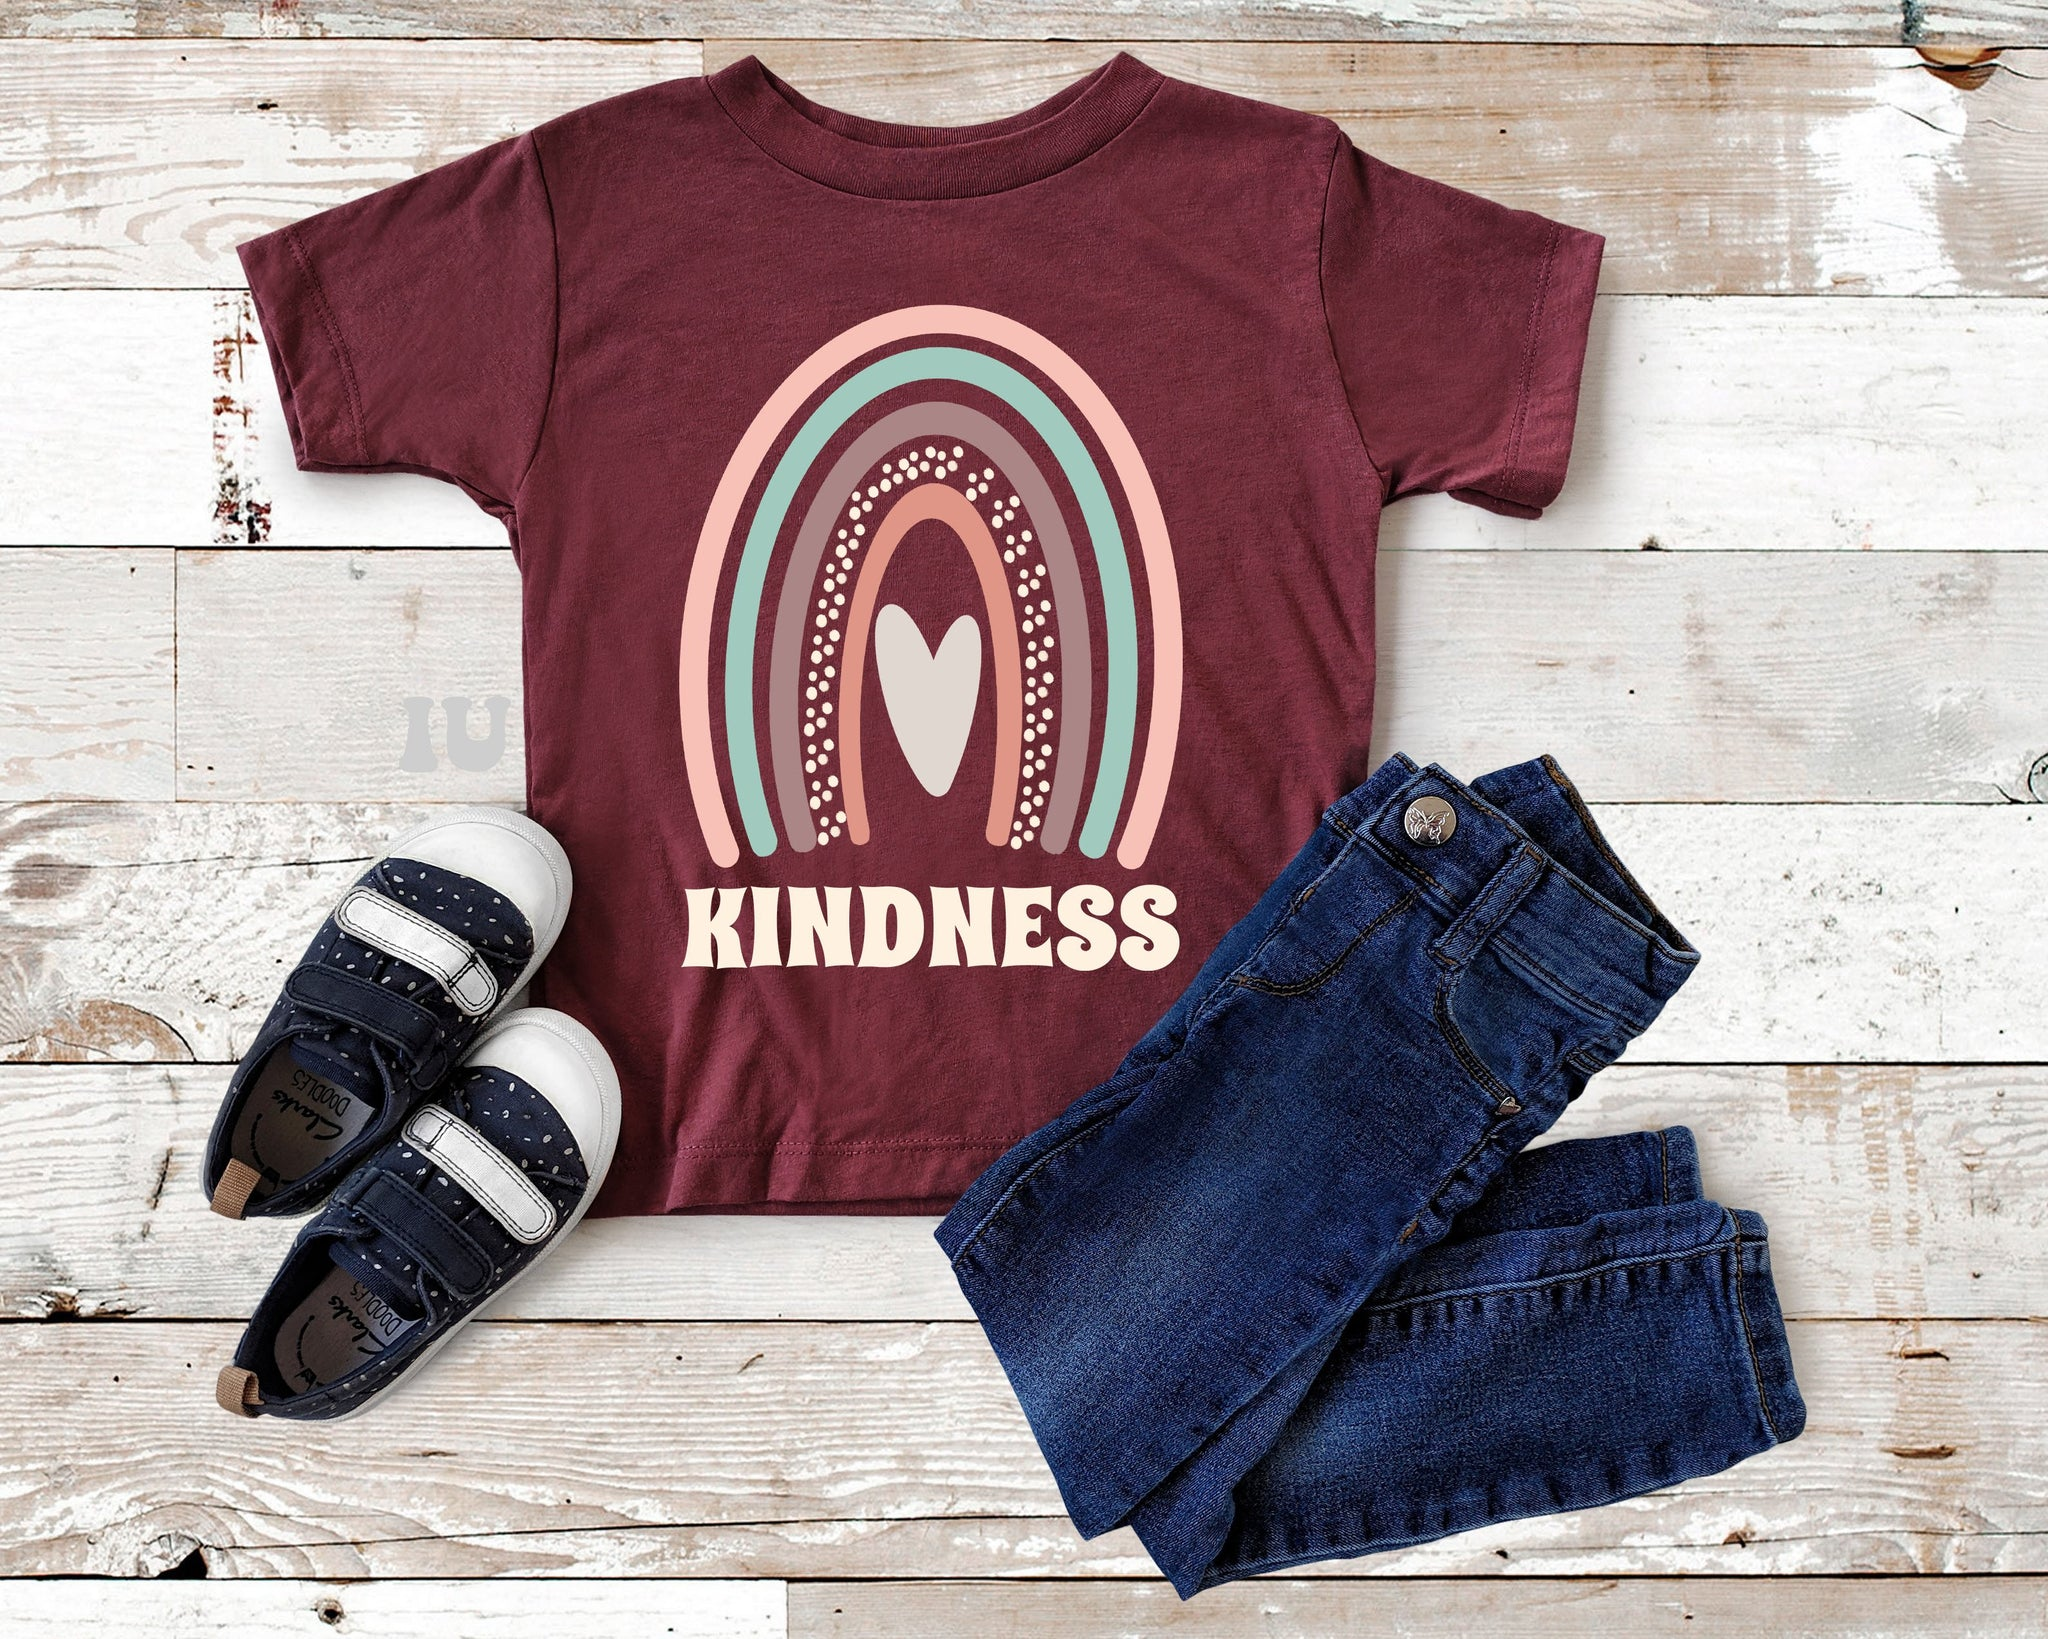 Kid's | Kindness Rainbow | Wholesale